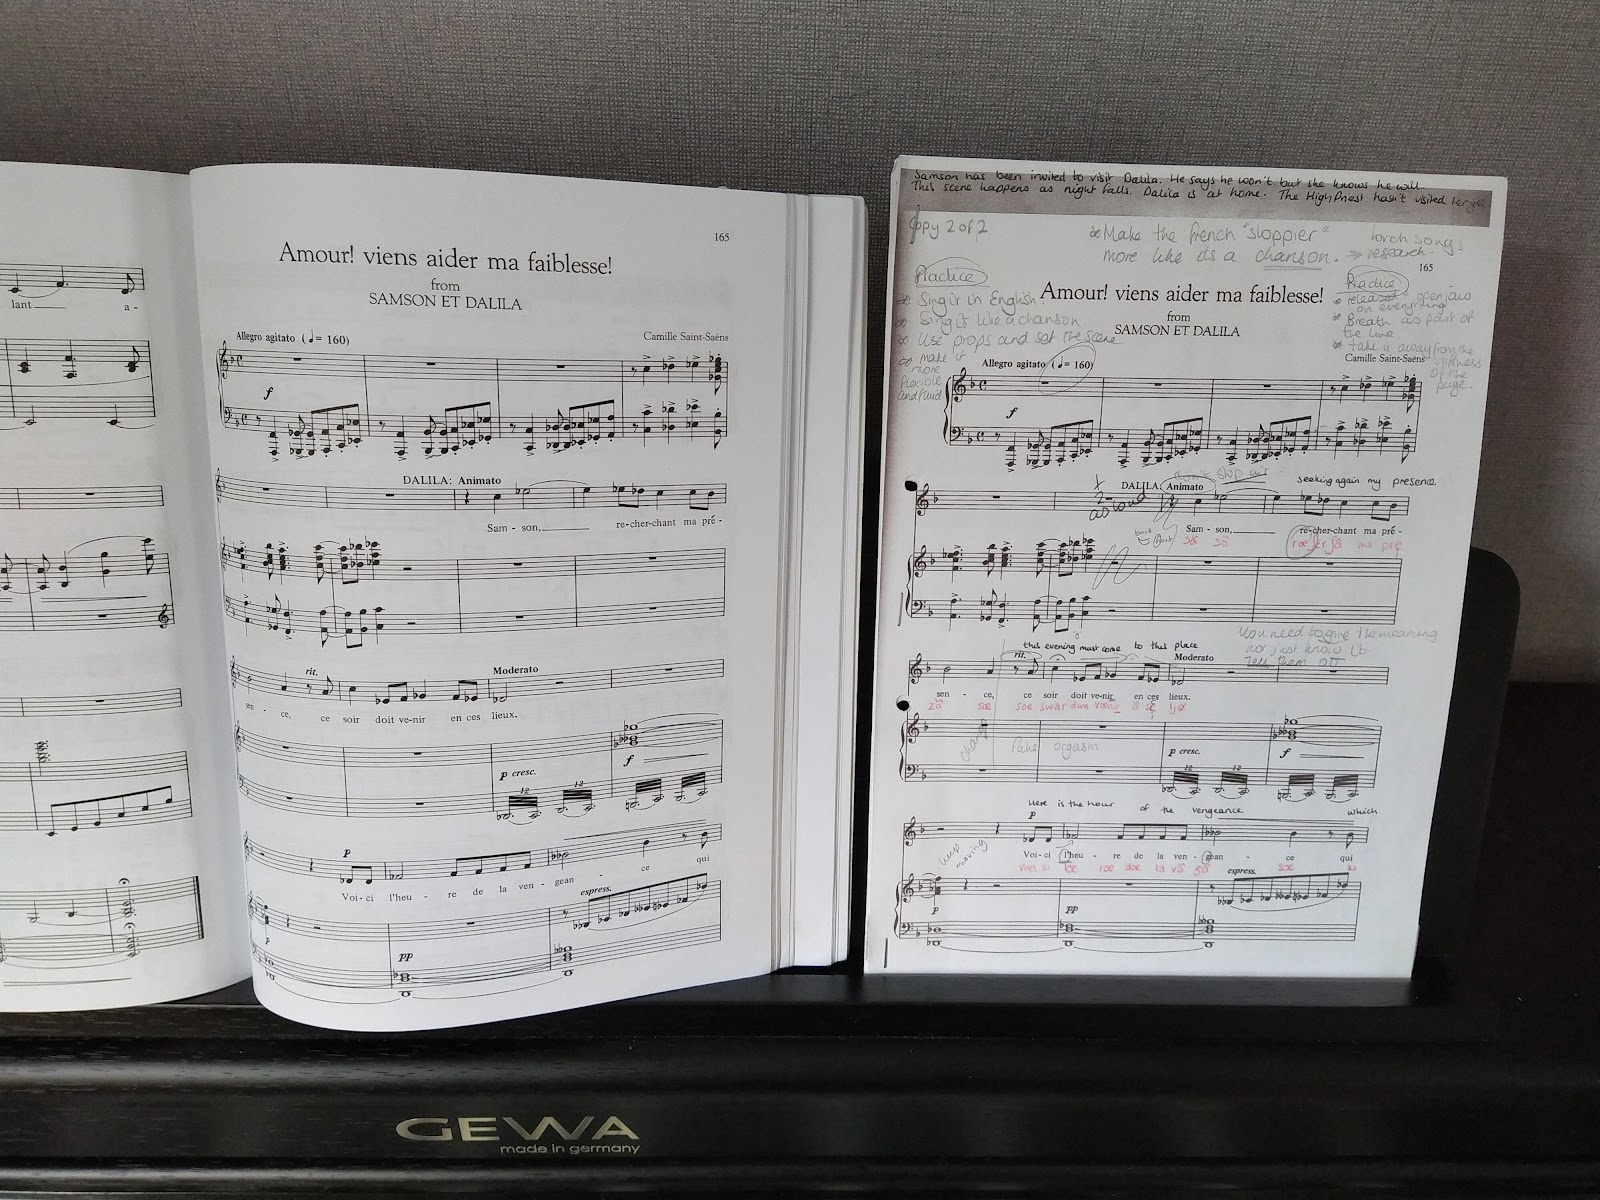 Two copies of the same piece of sheet music, one covered in notes and writing.